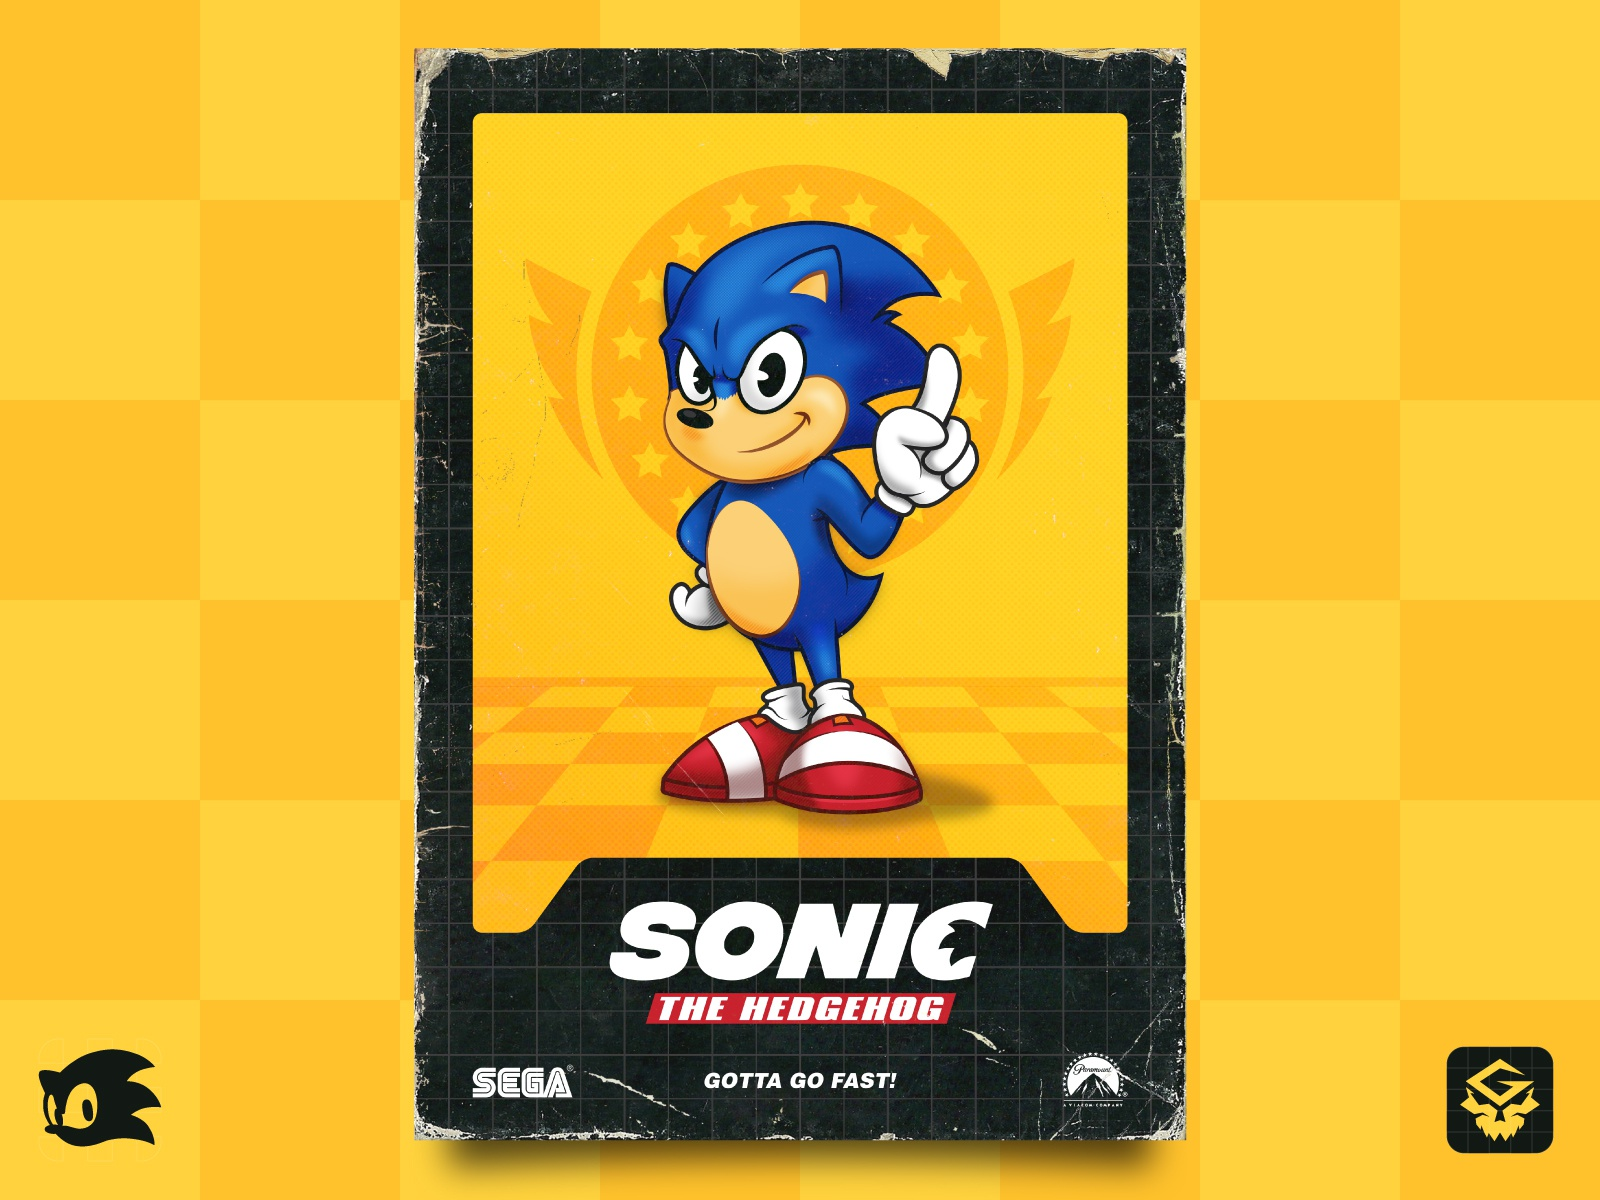 Sonic The Hedgehog Poster 2 By Gabriel Arruda On Dribbble